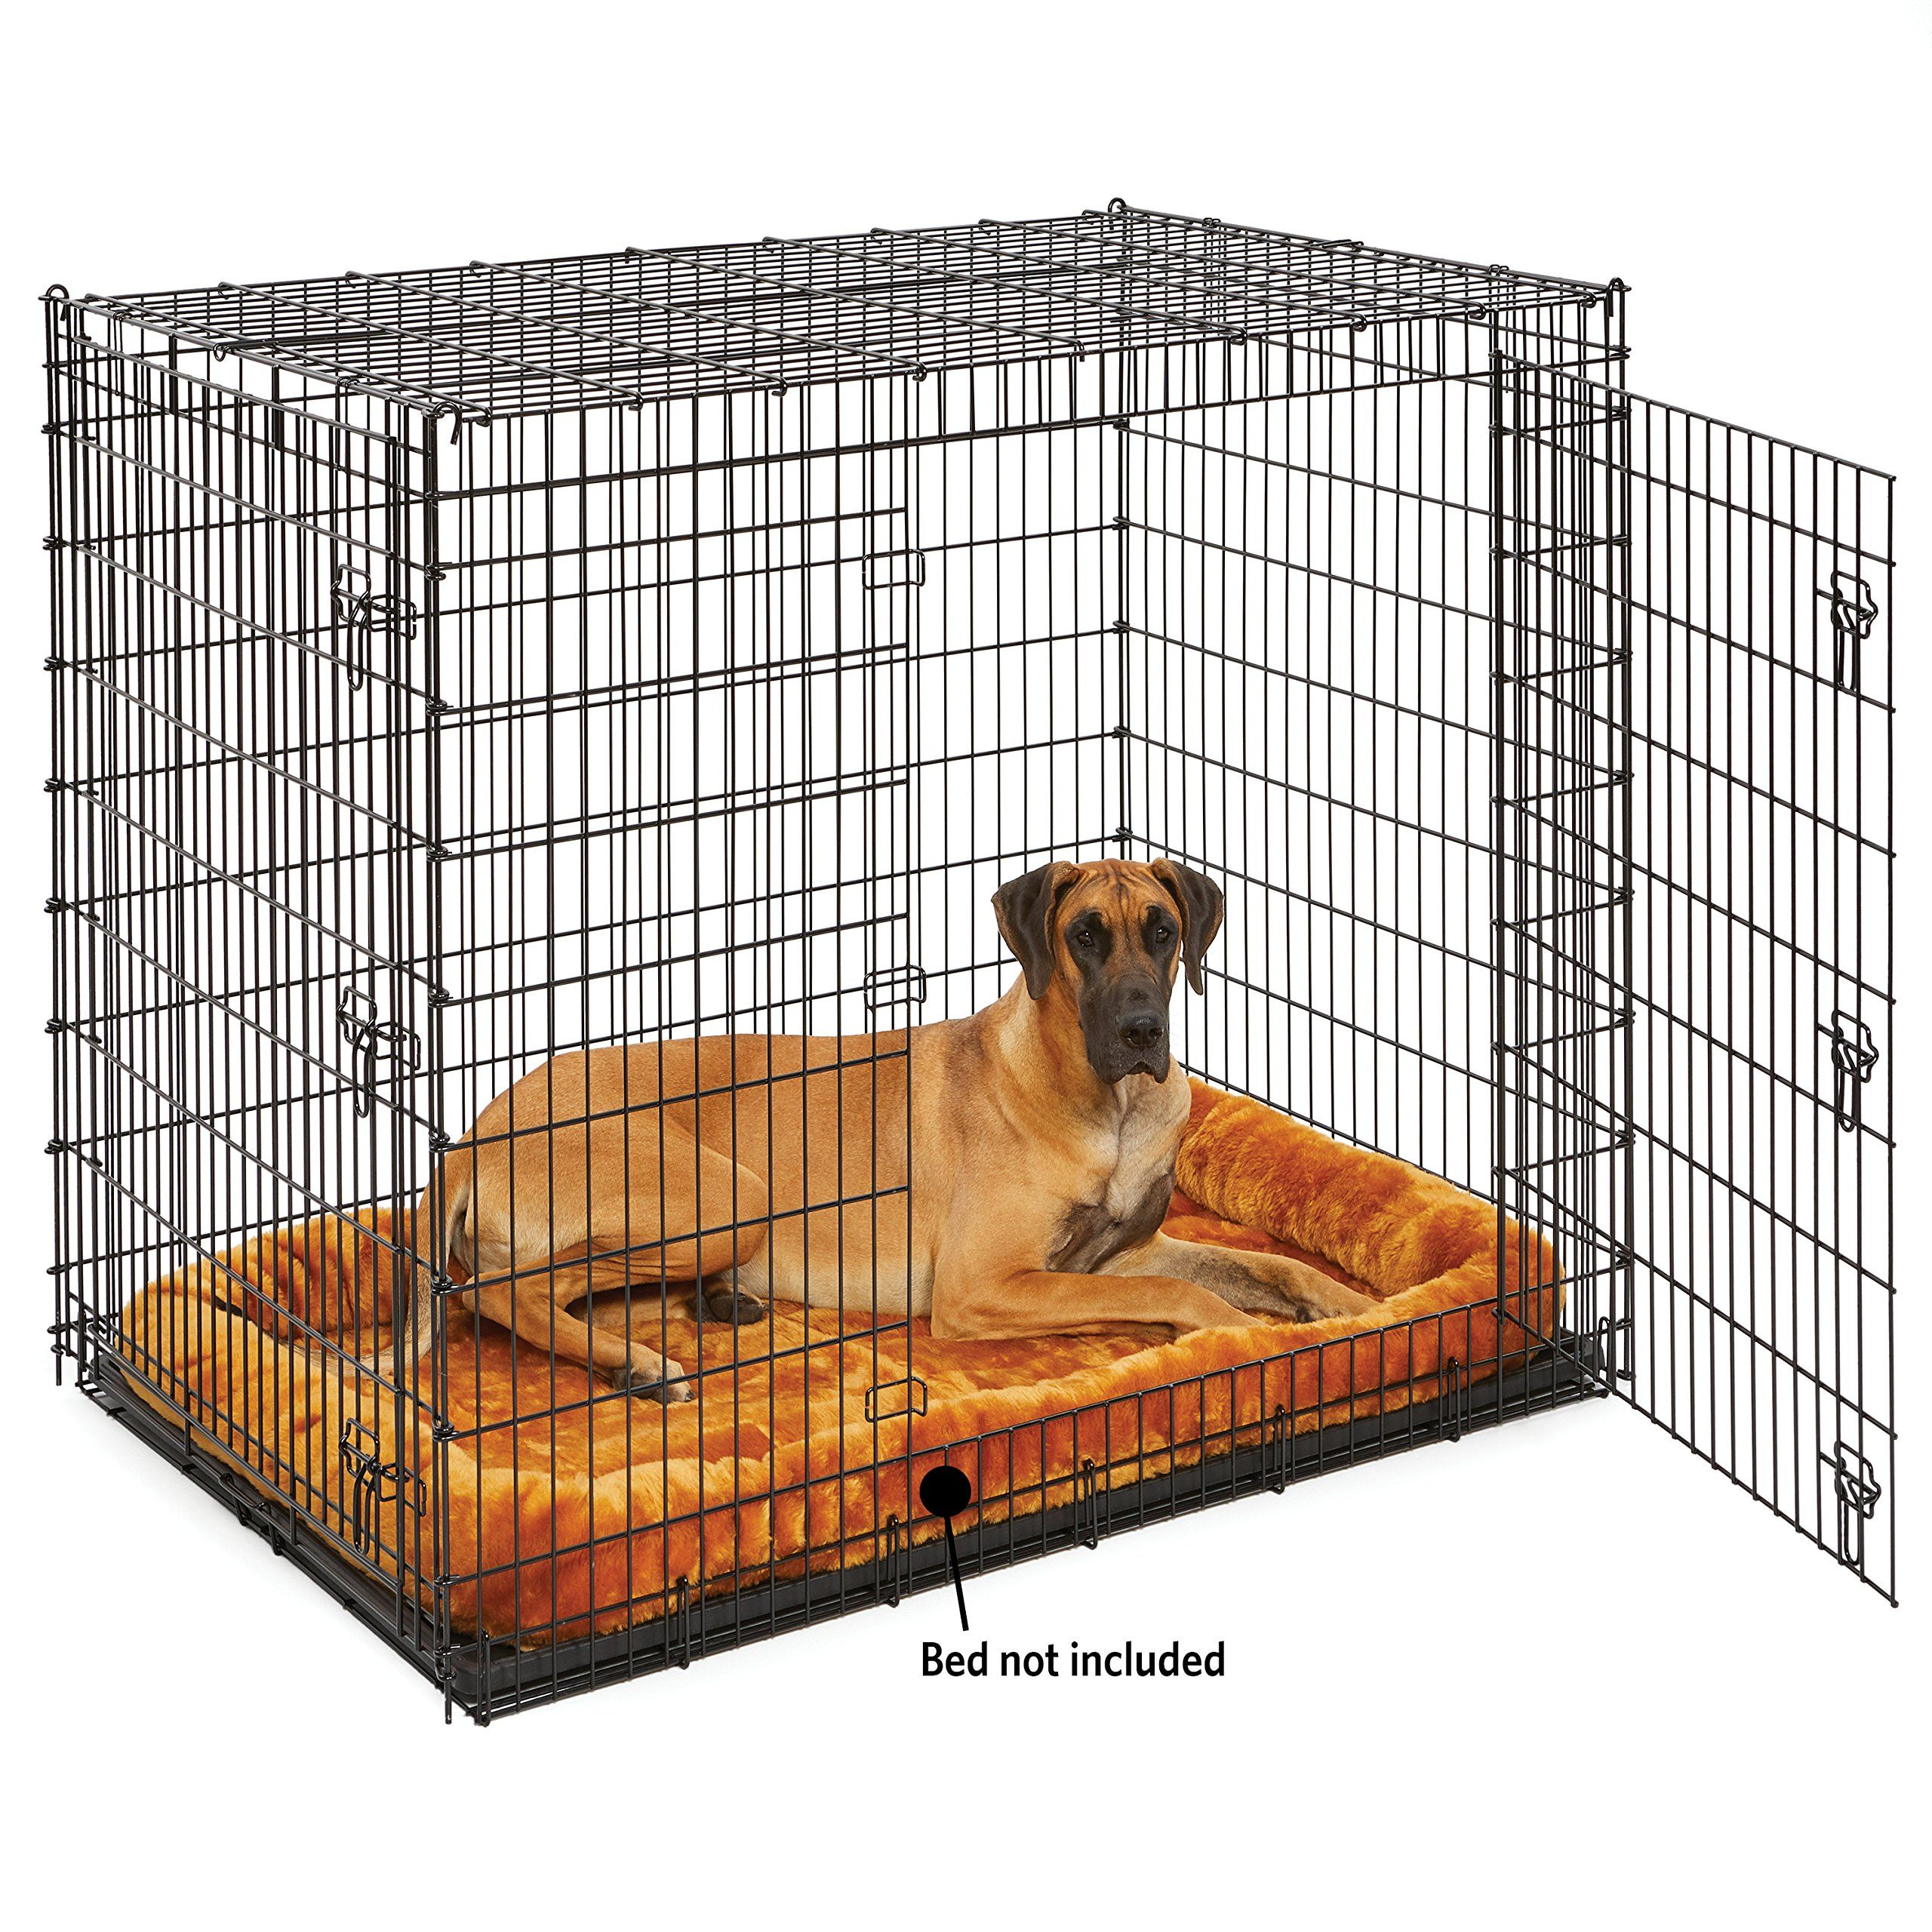 Midwest Homes For Pets Xxl Giant Dog Crate 54 Inch Long Ginormous Double Door Dog Crate Ad Xxl Affiliate Giant Dog Giant Dogs Dog Crate Xxl Dog Crate